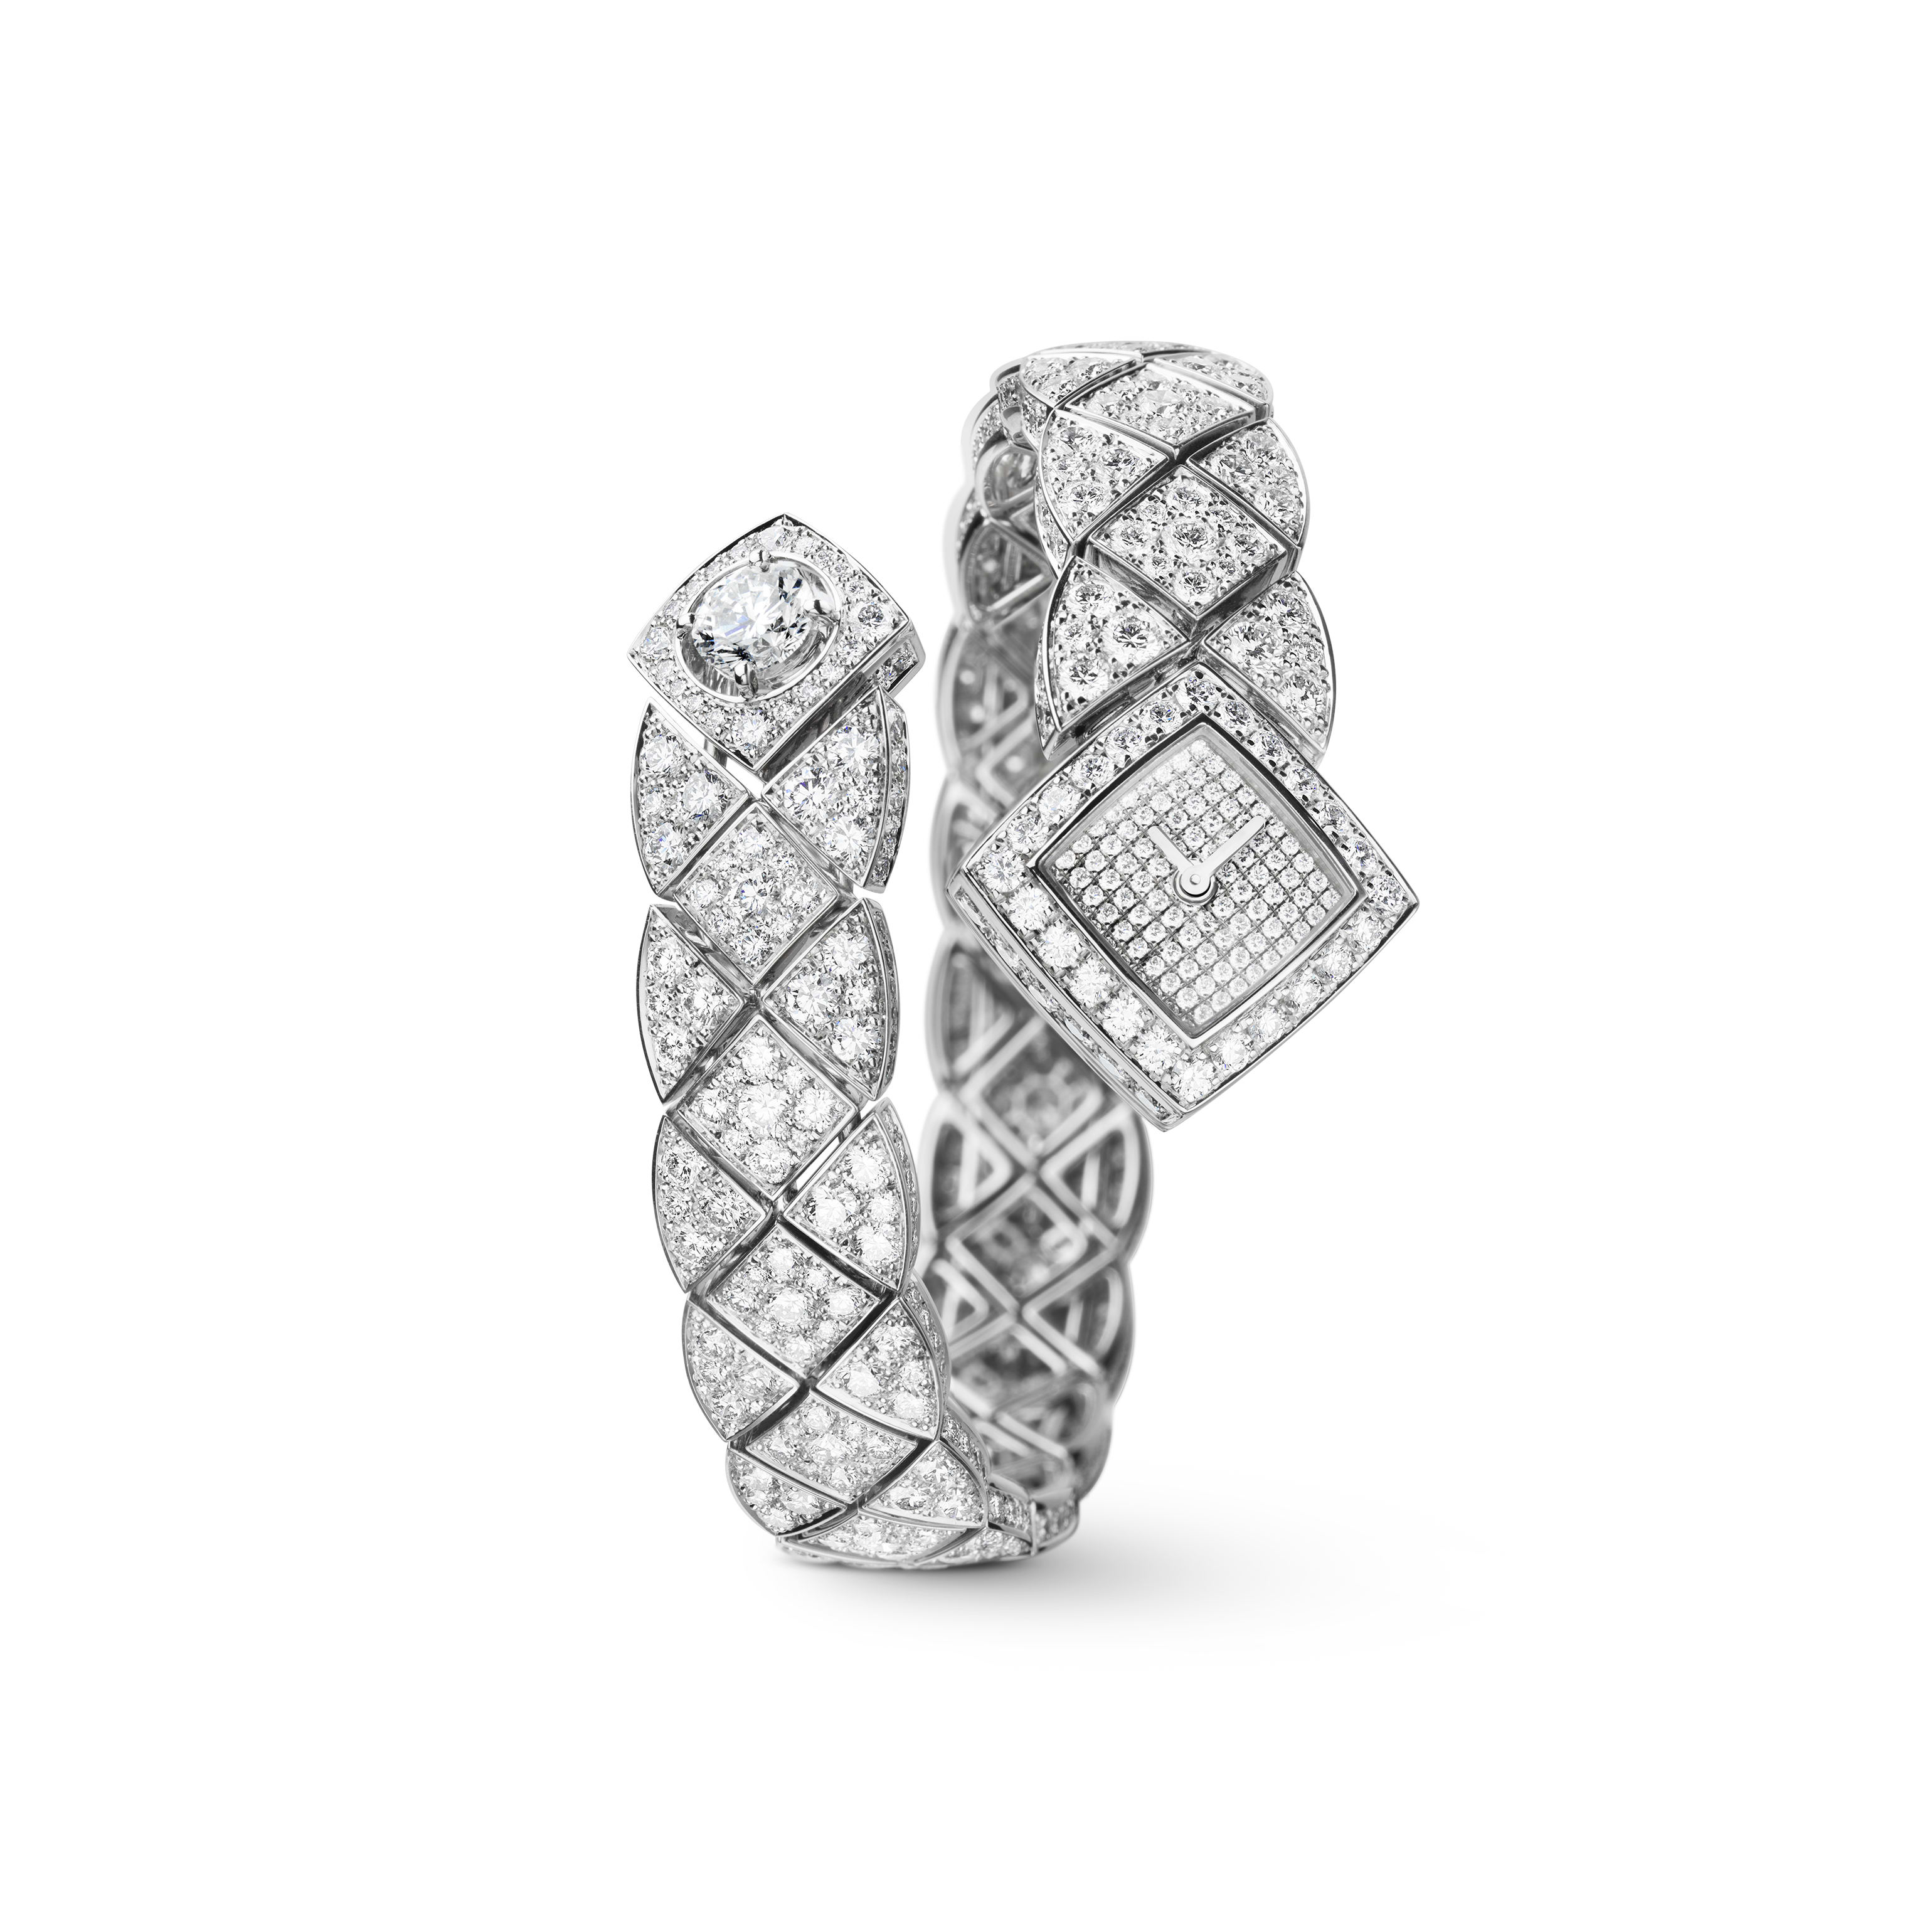 Matelassée Jewellery Watch - Matelassée motif in 18K white gold, diamonds and central diamond - CHANEL - Default view - see standard sized version